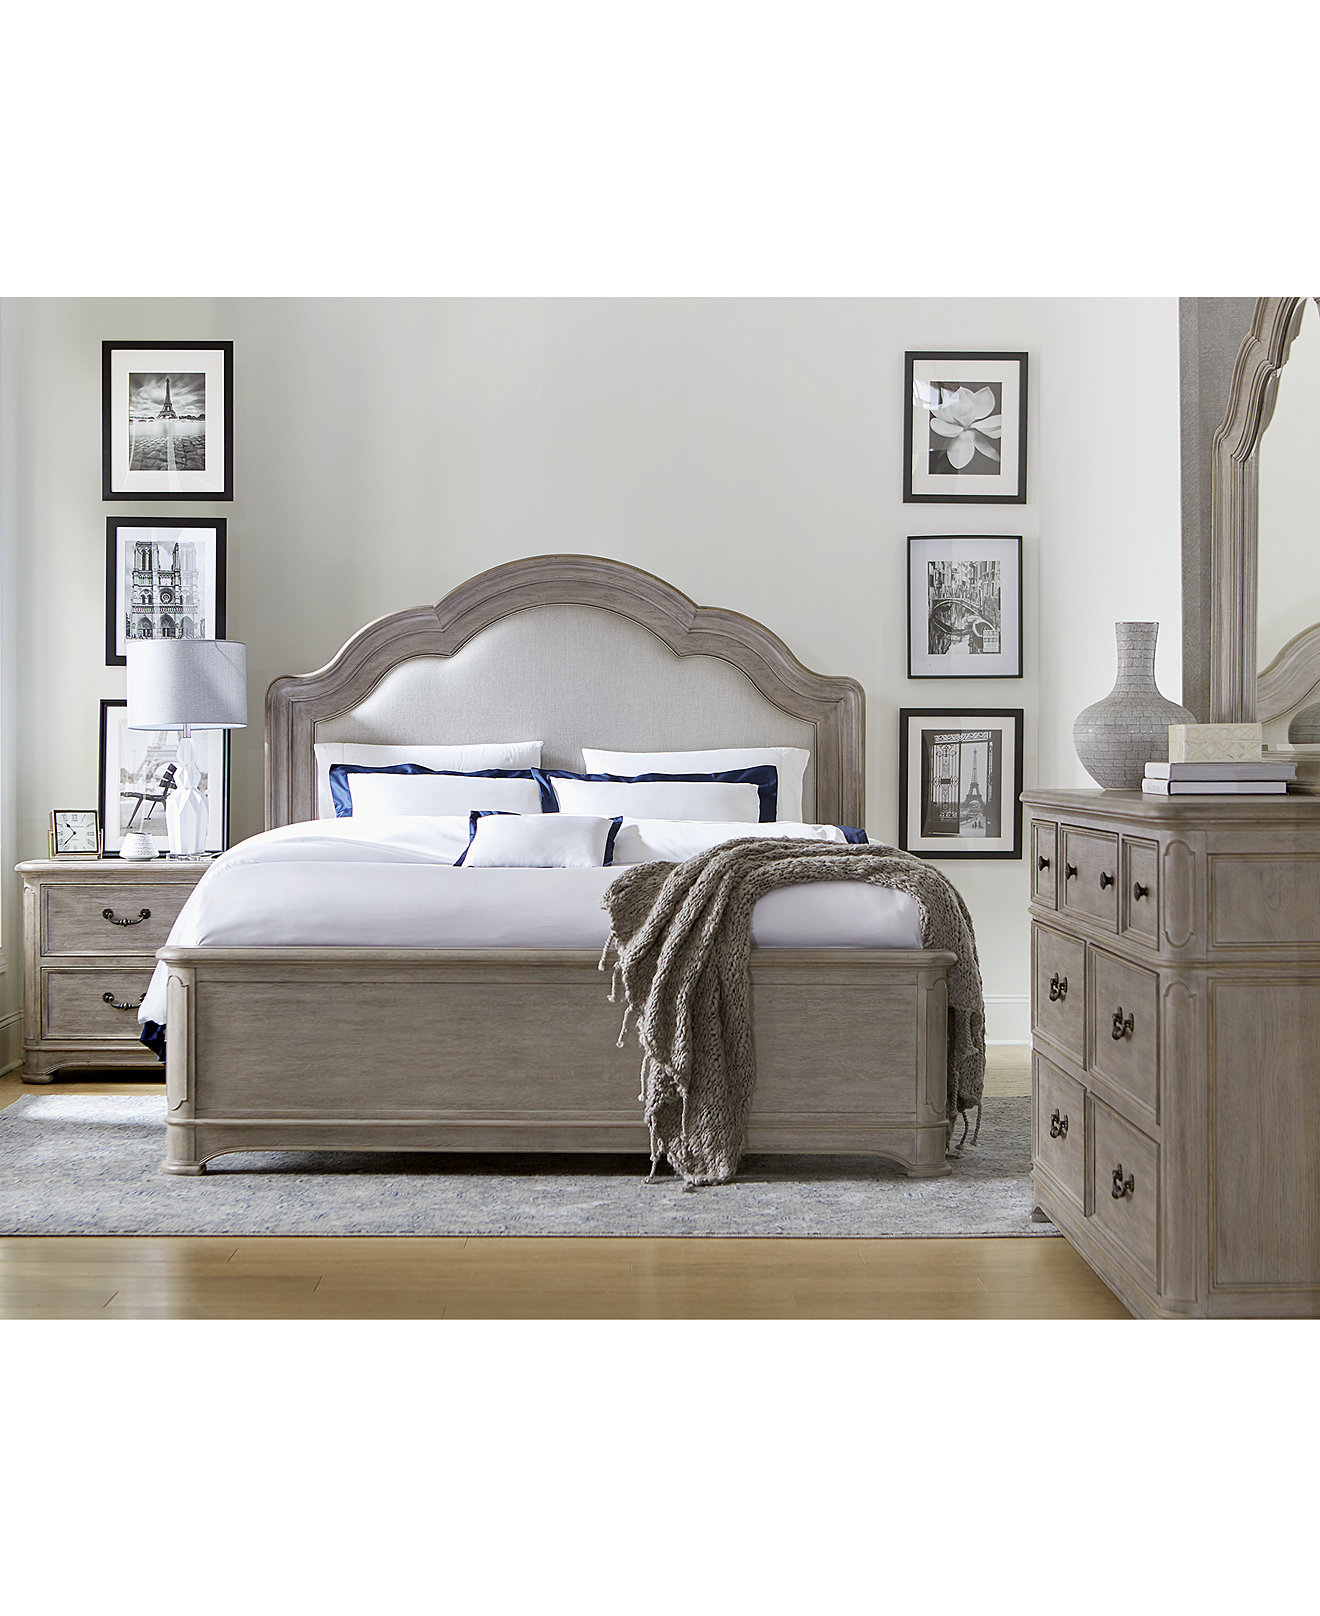 Bedroom Furniture Sets - Macy's